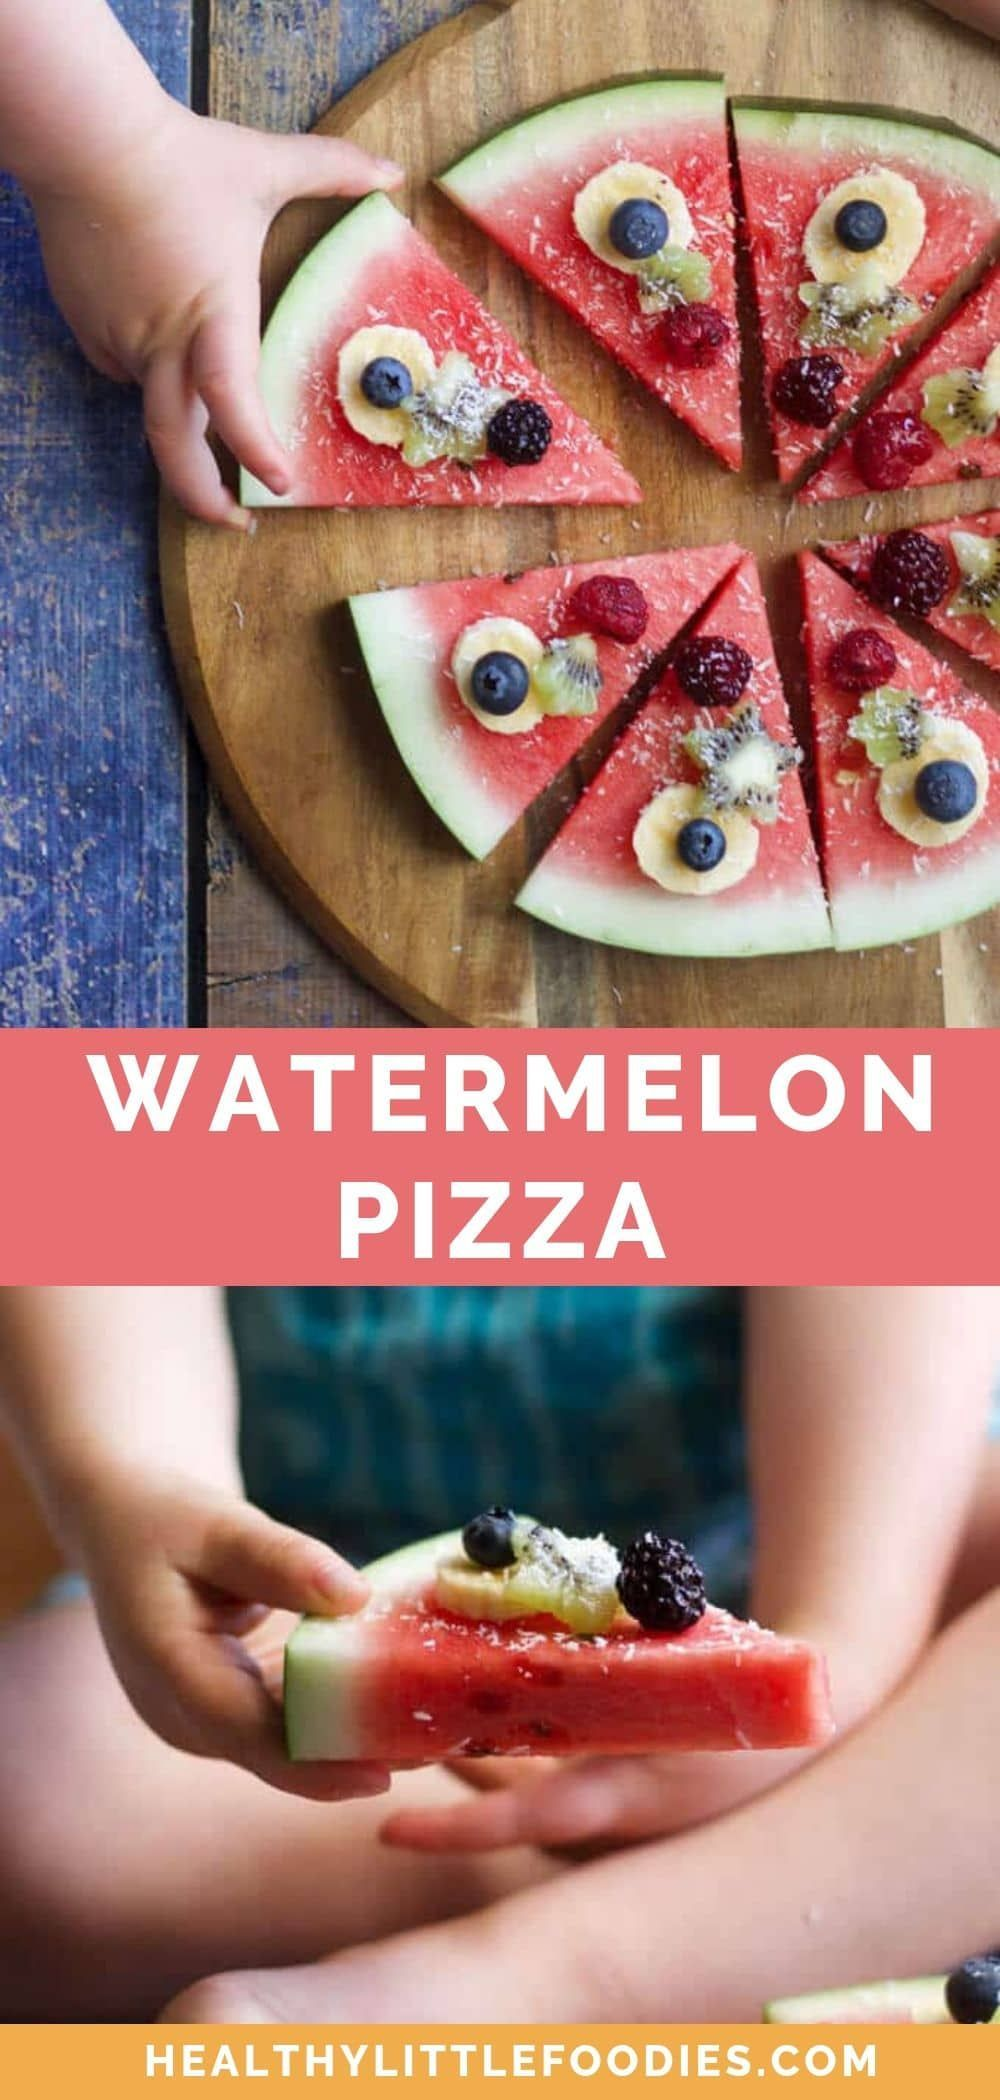 This Watermelon Pizza is a fun, fresh and healthy snack for kids. Top pizza shaped wedges of watermelon with a range of different fruits and a sprinkle of coconut for the